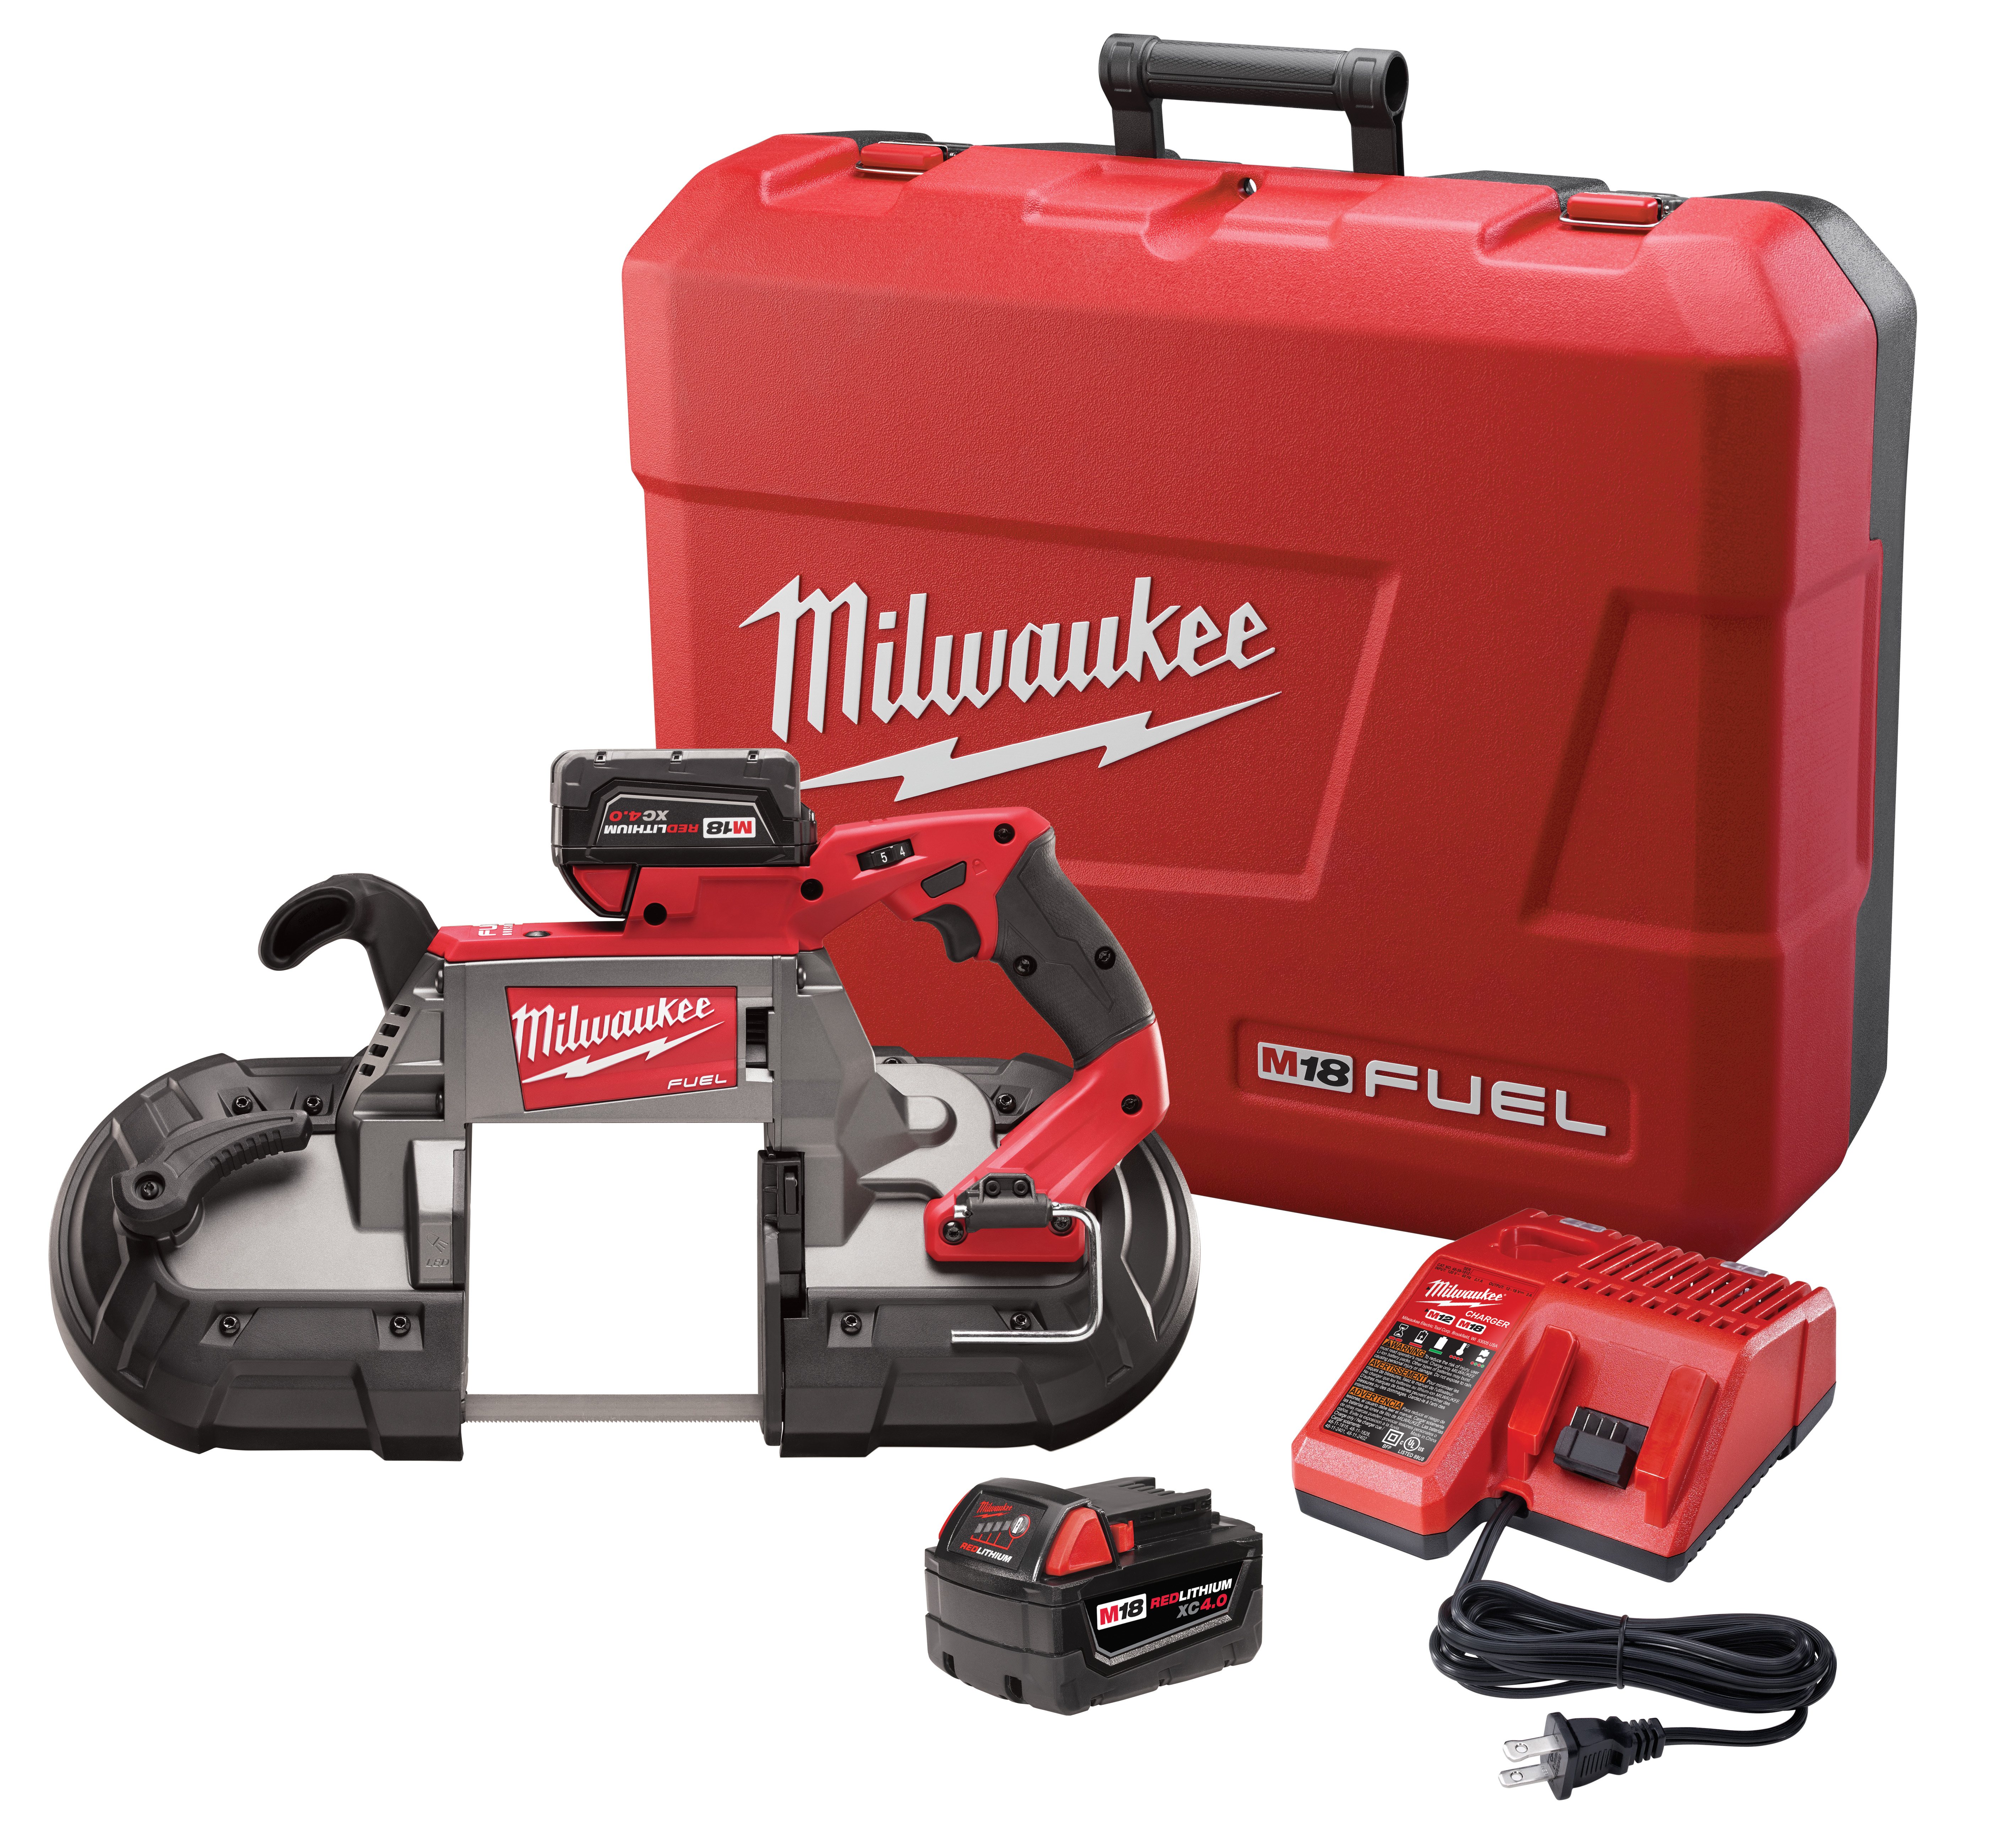 Milwaukee® M18 FUEL™ 2729-22 Cordless Band Saw Kit, 5 in Cutting, 44.875 in L x 0.5 in W x 0.02 in THK Blade, 18 VDC, 5 Ah Lithium-Ion Battery